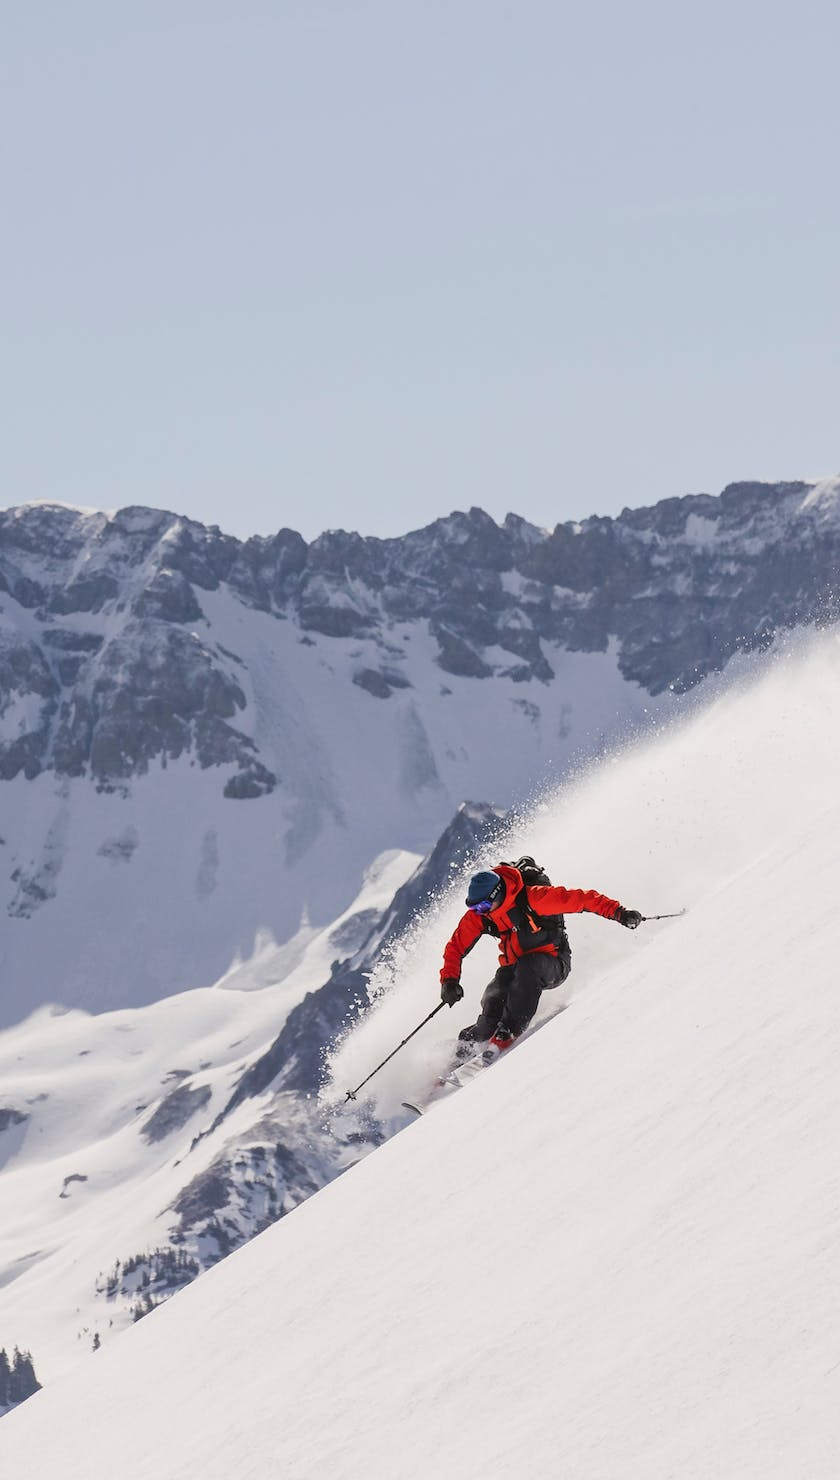 ripping on F20 skis